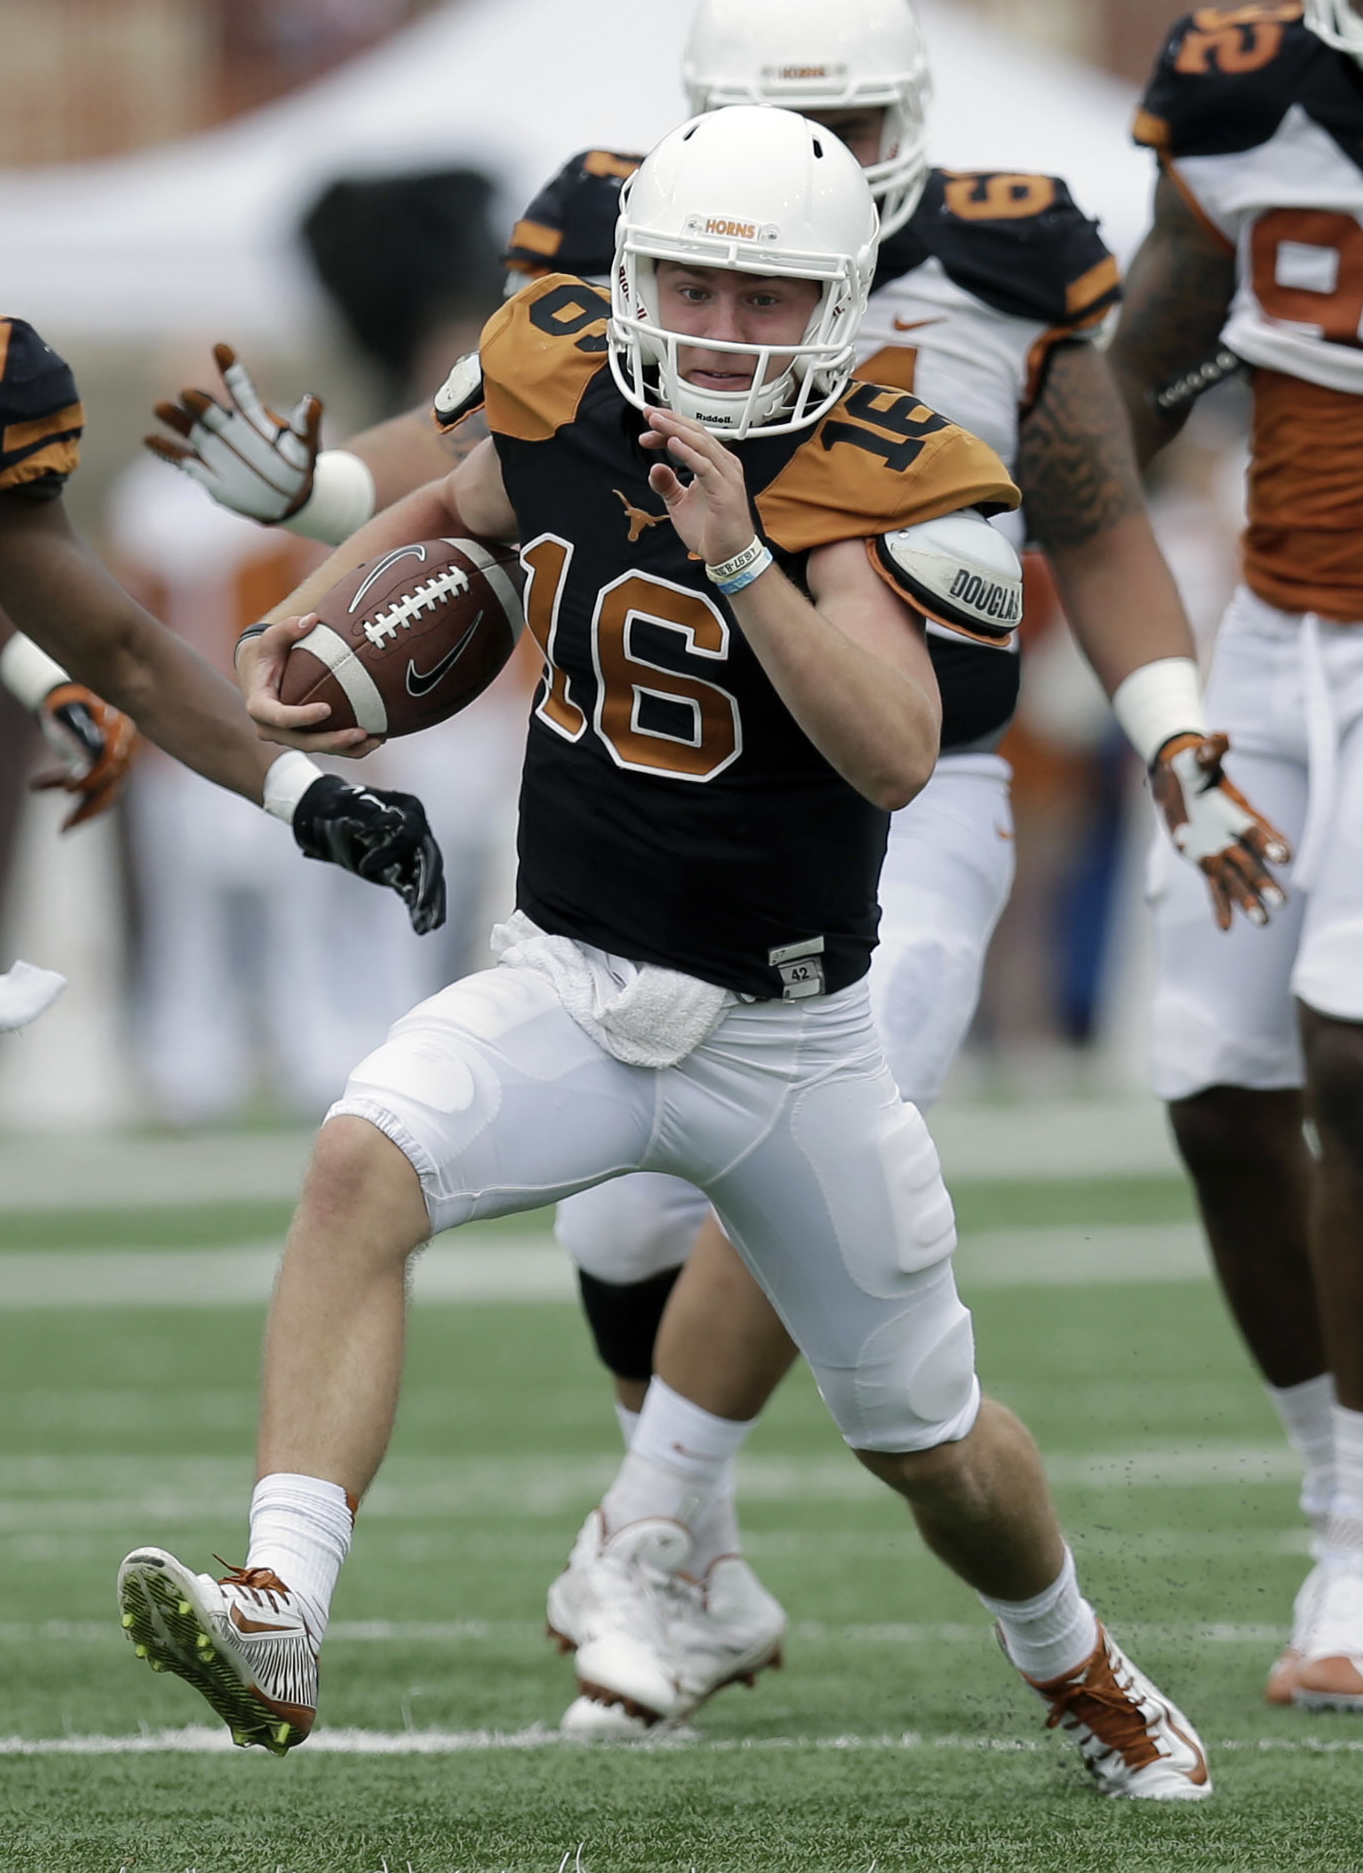 FILE - In this April 16, 2016, file photo, Texas quarterback Shane Buechele (16) scrambles for yards during a spring NCAA college football game, in Austin, Texas. Texas coach Charlie Strong is keeping his big secret until game day. Strong on Monday, Aug.